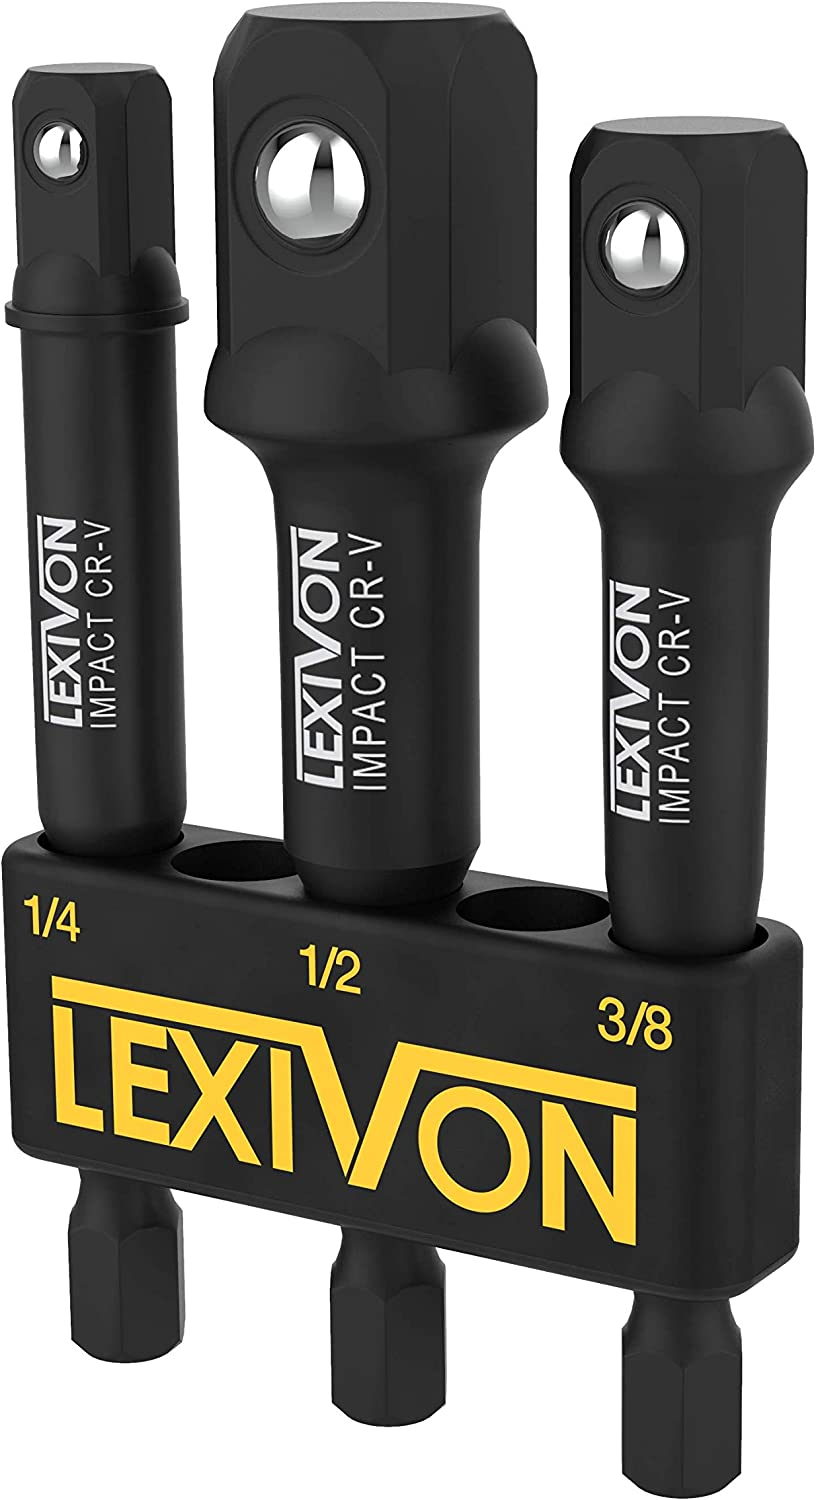 "LEXIVON Impact Grade Socket Adapter Set, 3"" Extension Bit With Holder 